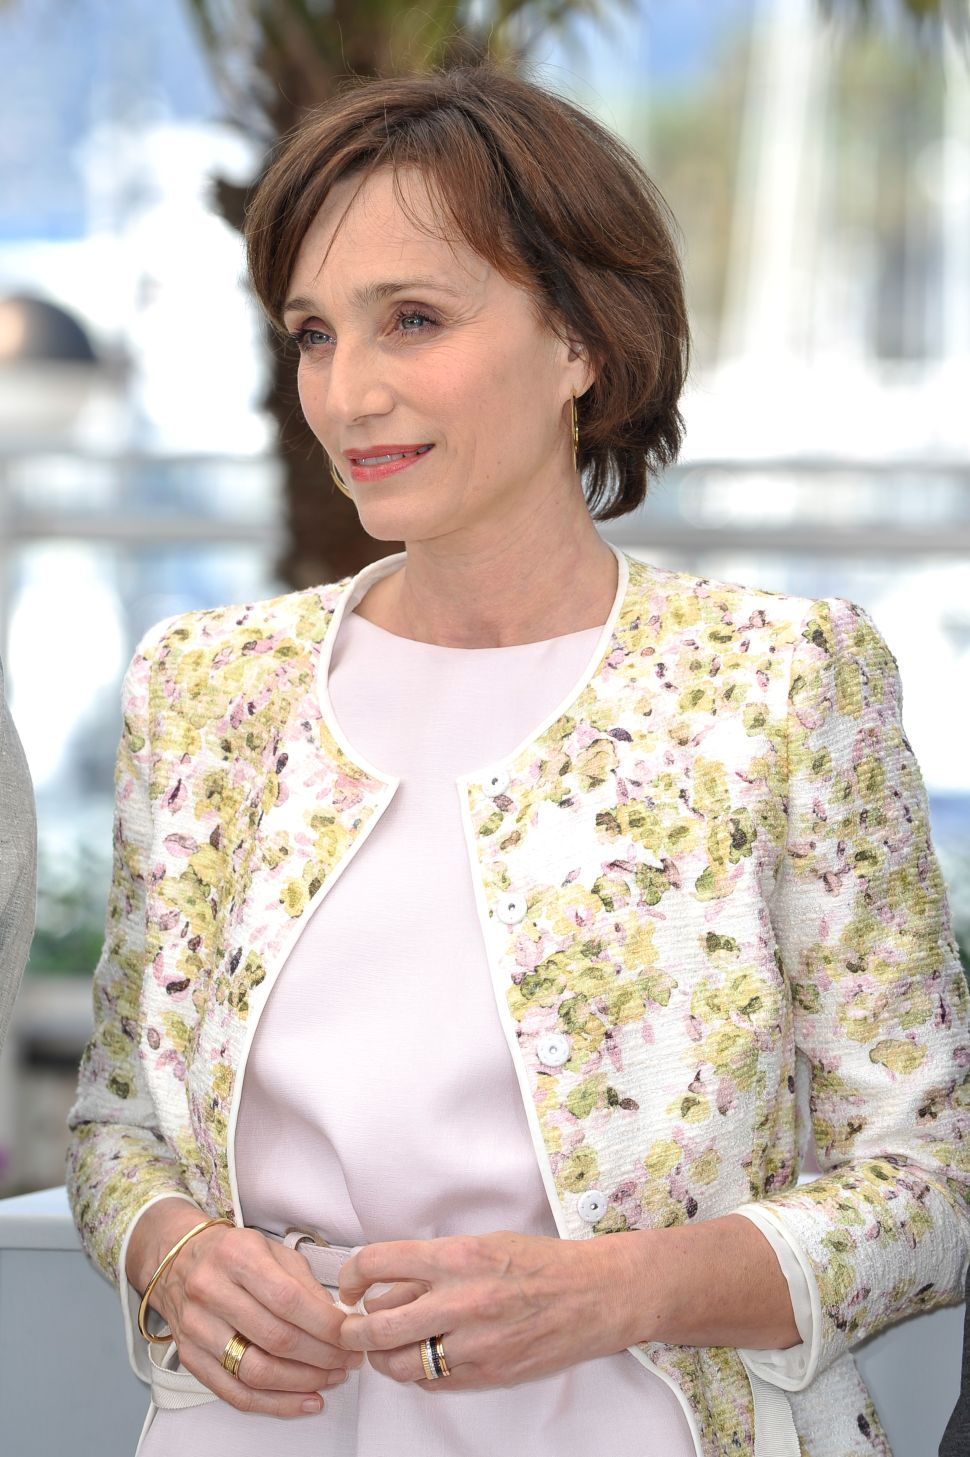 Cannes: Kristin Scott Thomas is Saving Grace in <em>Only God Forgives</em> and Robert Redford Puts the Oscars on Notice